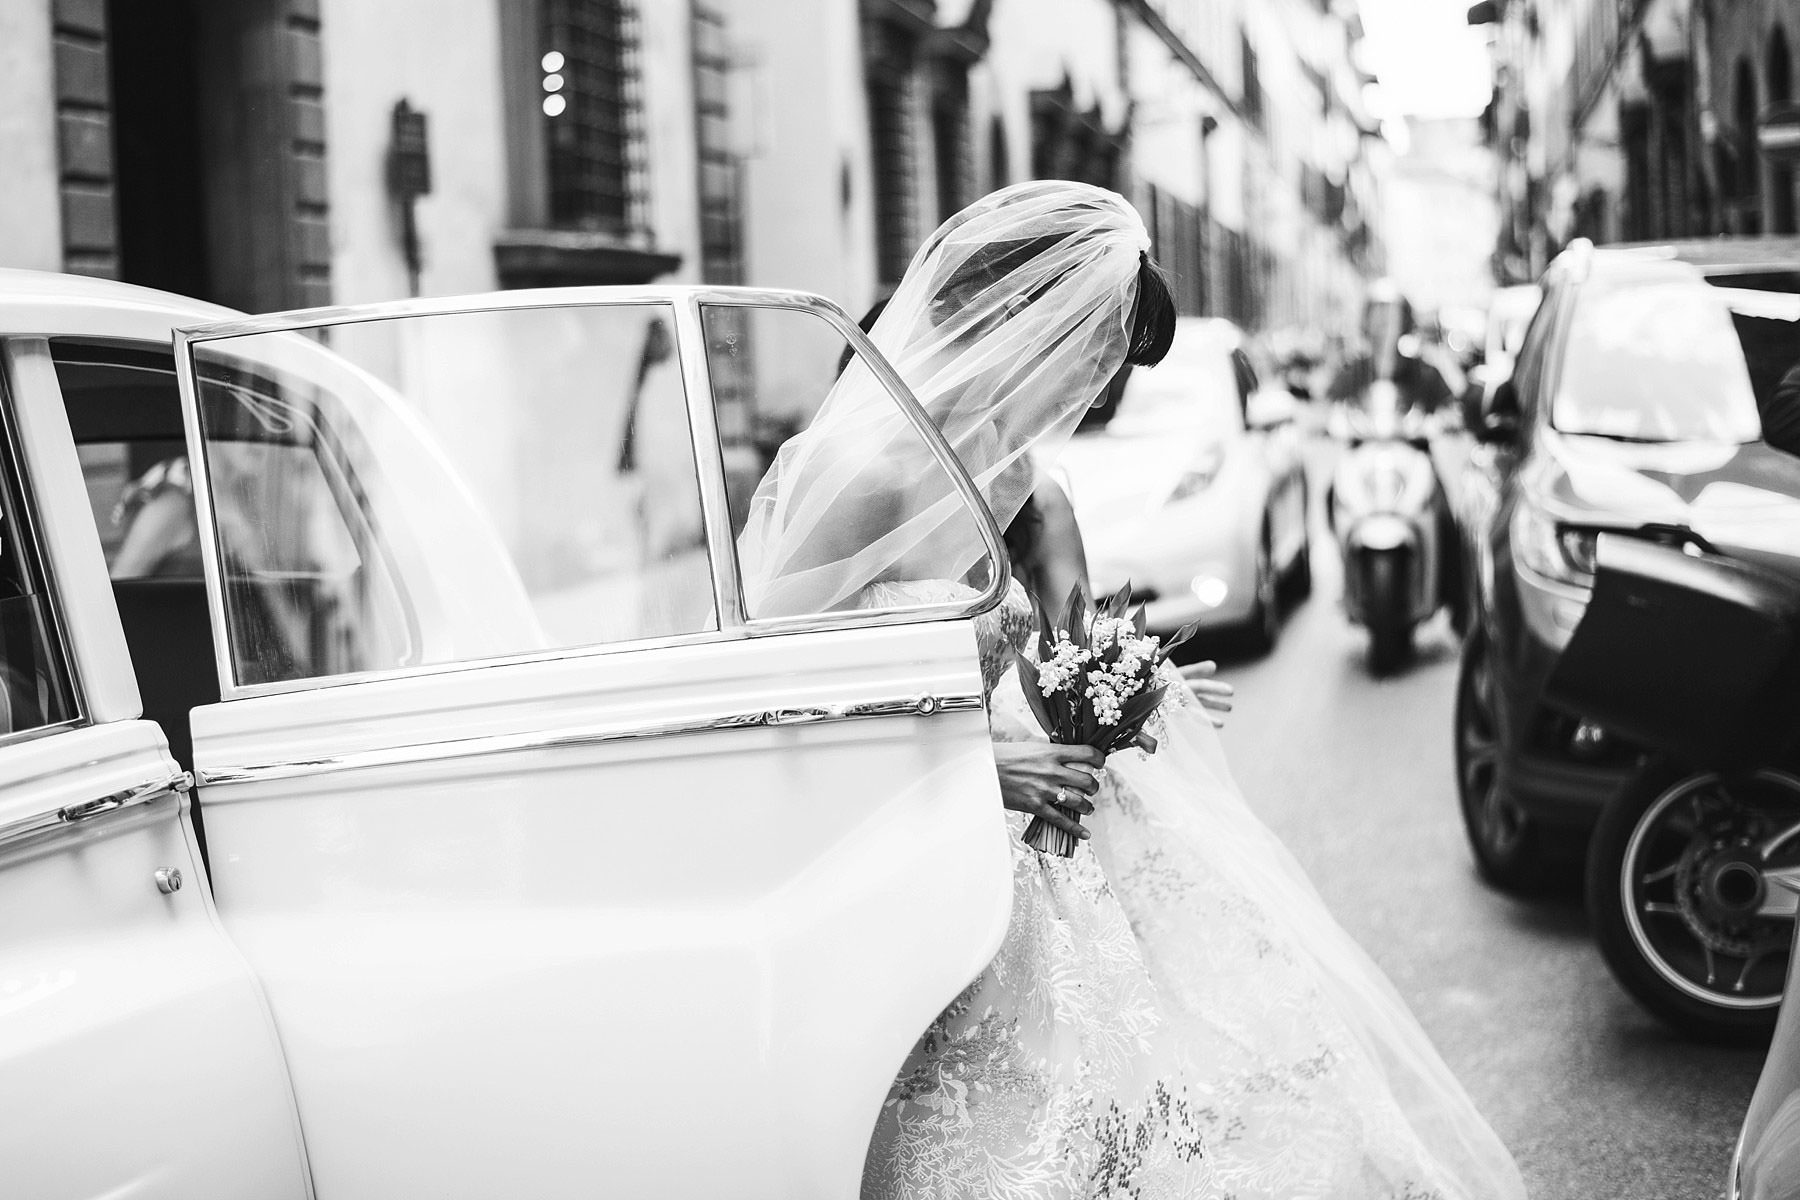 Bride Elizabeth just ready to walks down the aisle for her destination wedding ceremony in St. Mark Church in Florence historic centre